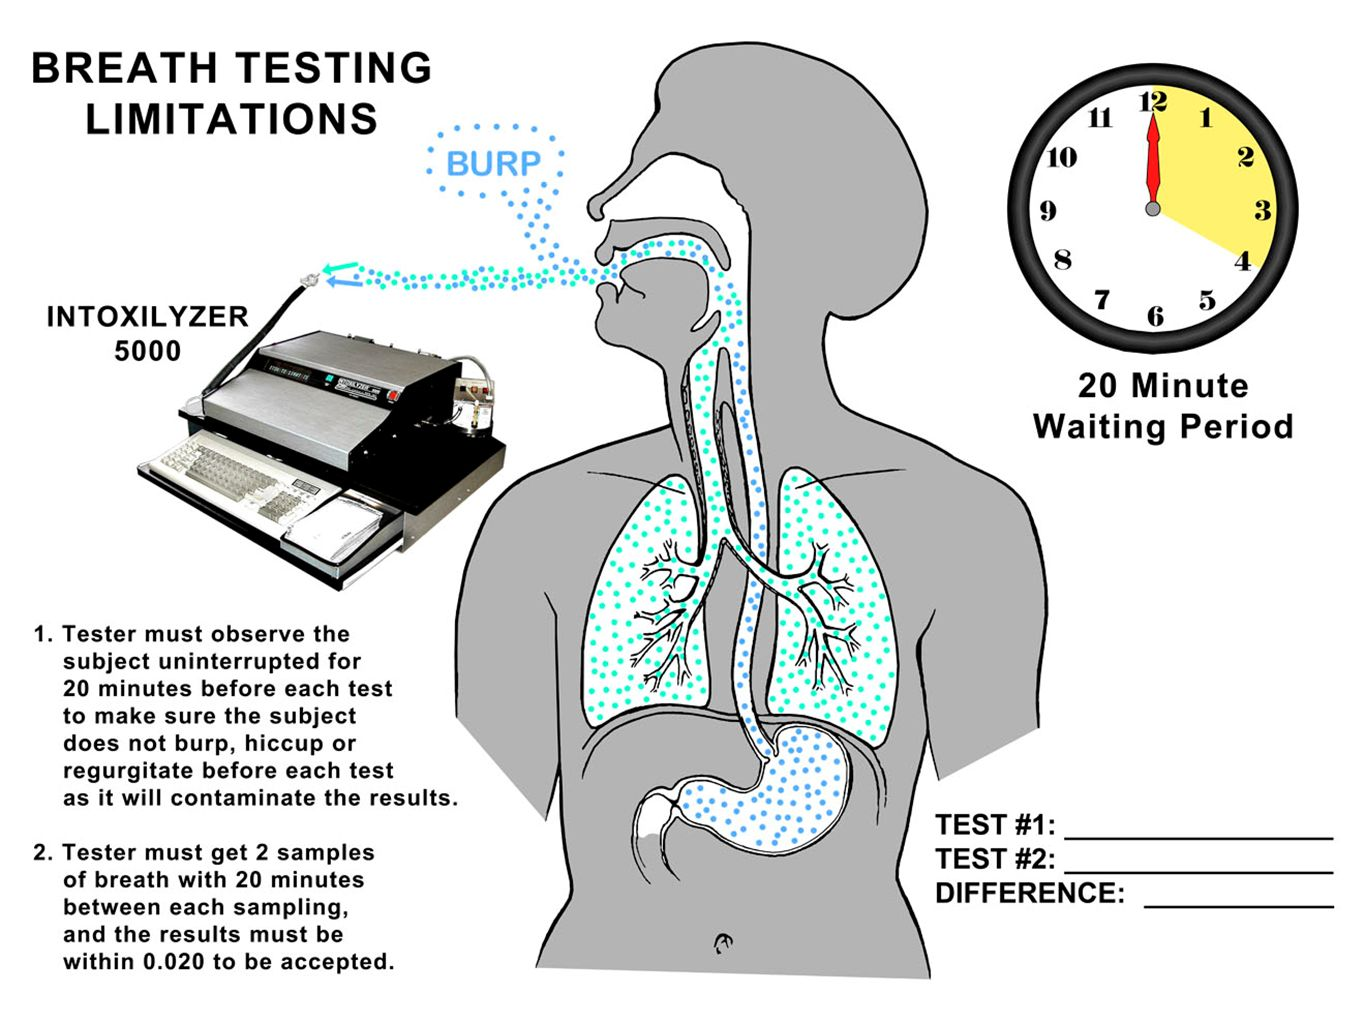 Just basic anatomy shows us why alcohol potentially coming up from the stomach poses such a problem in breath testing.